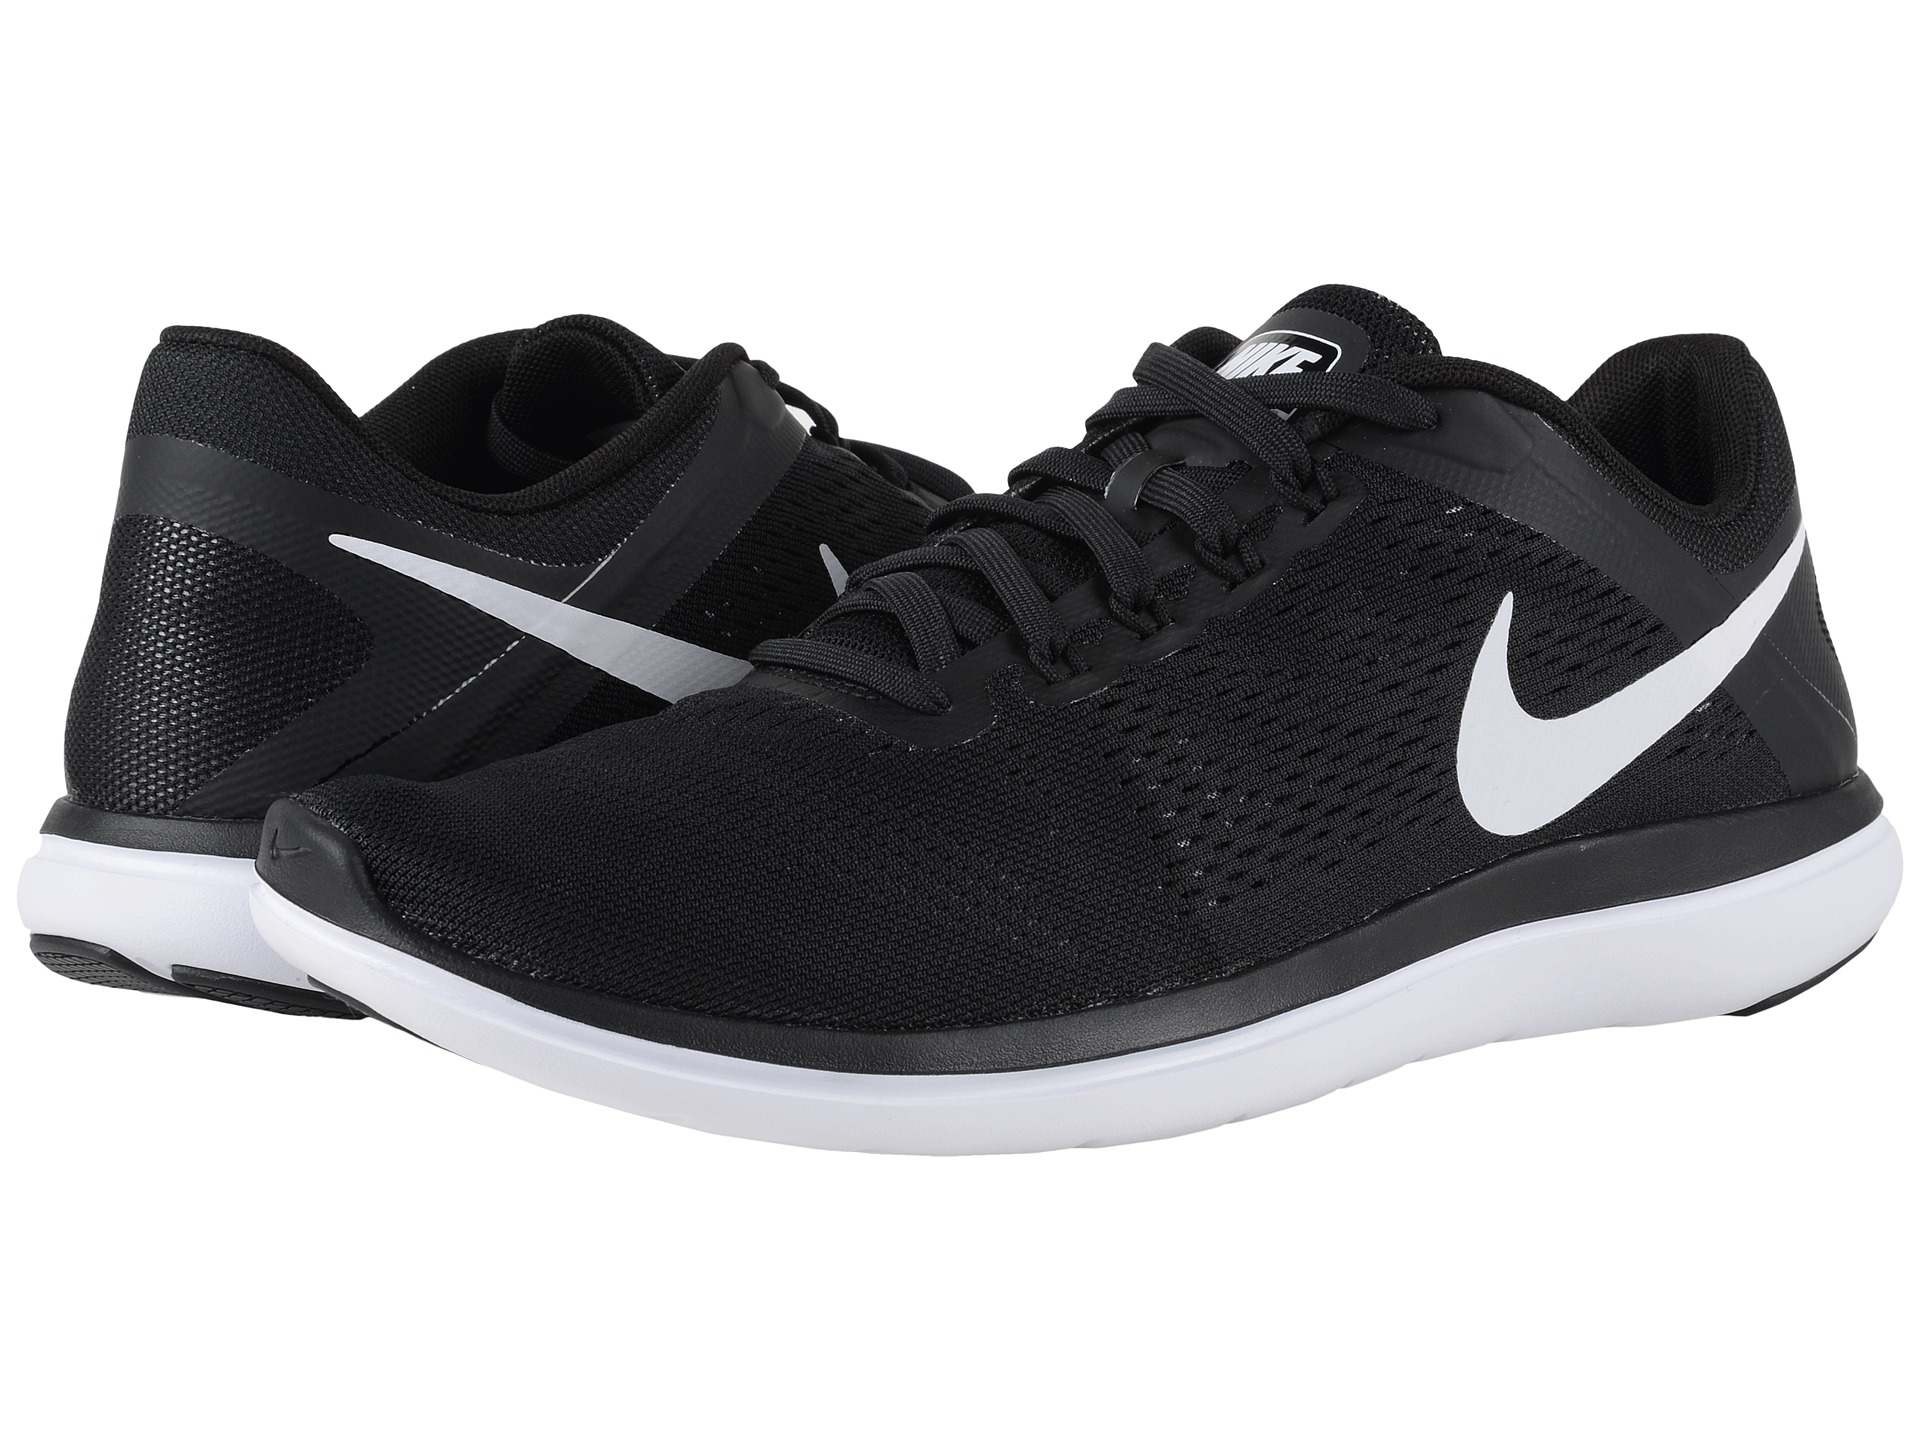 Gym Shoes For Men Zappos